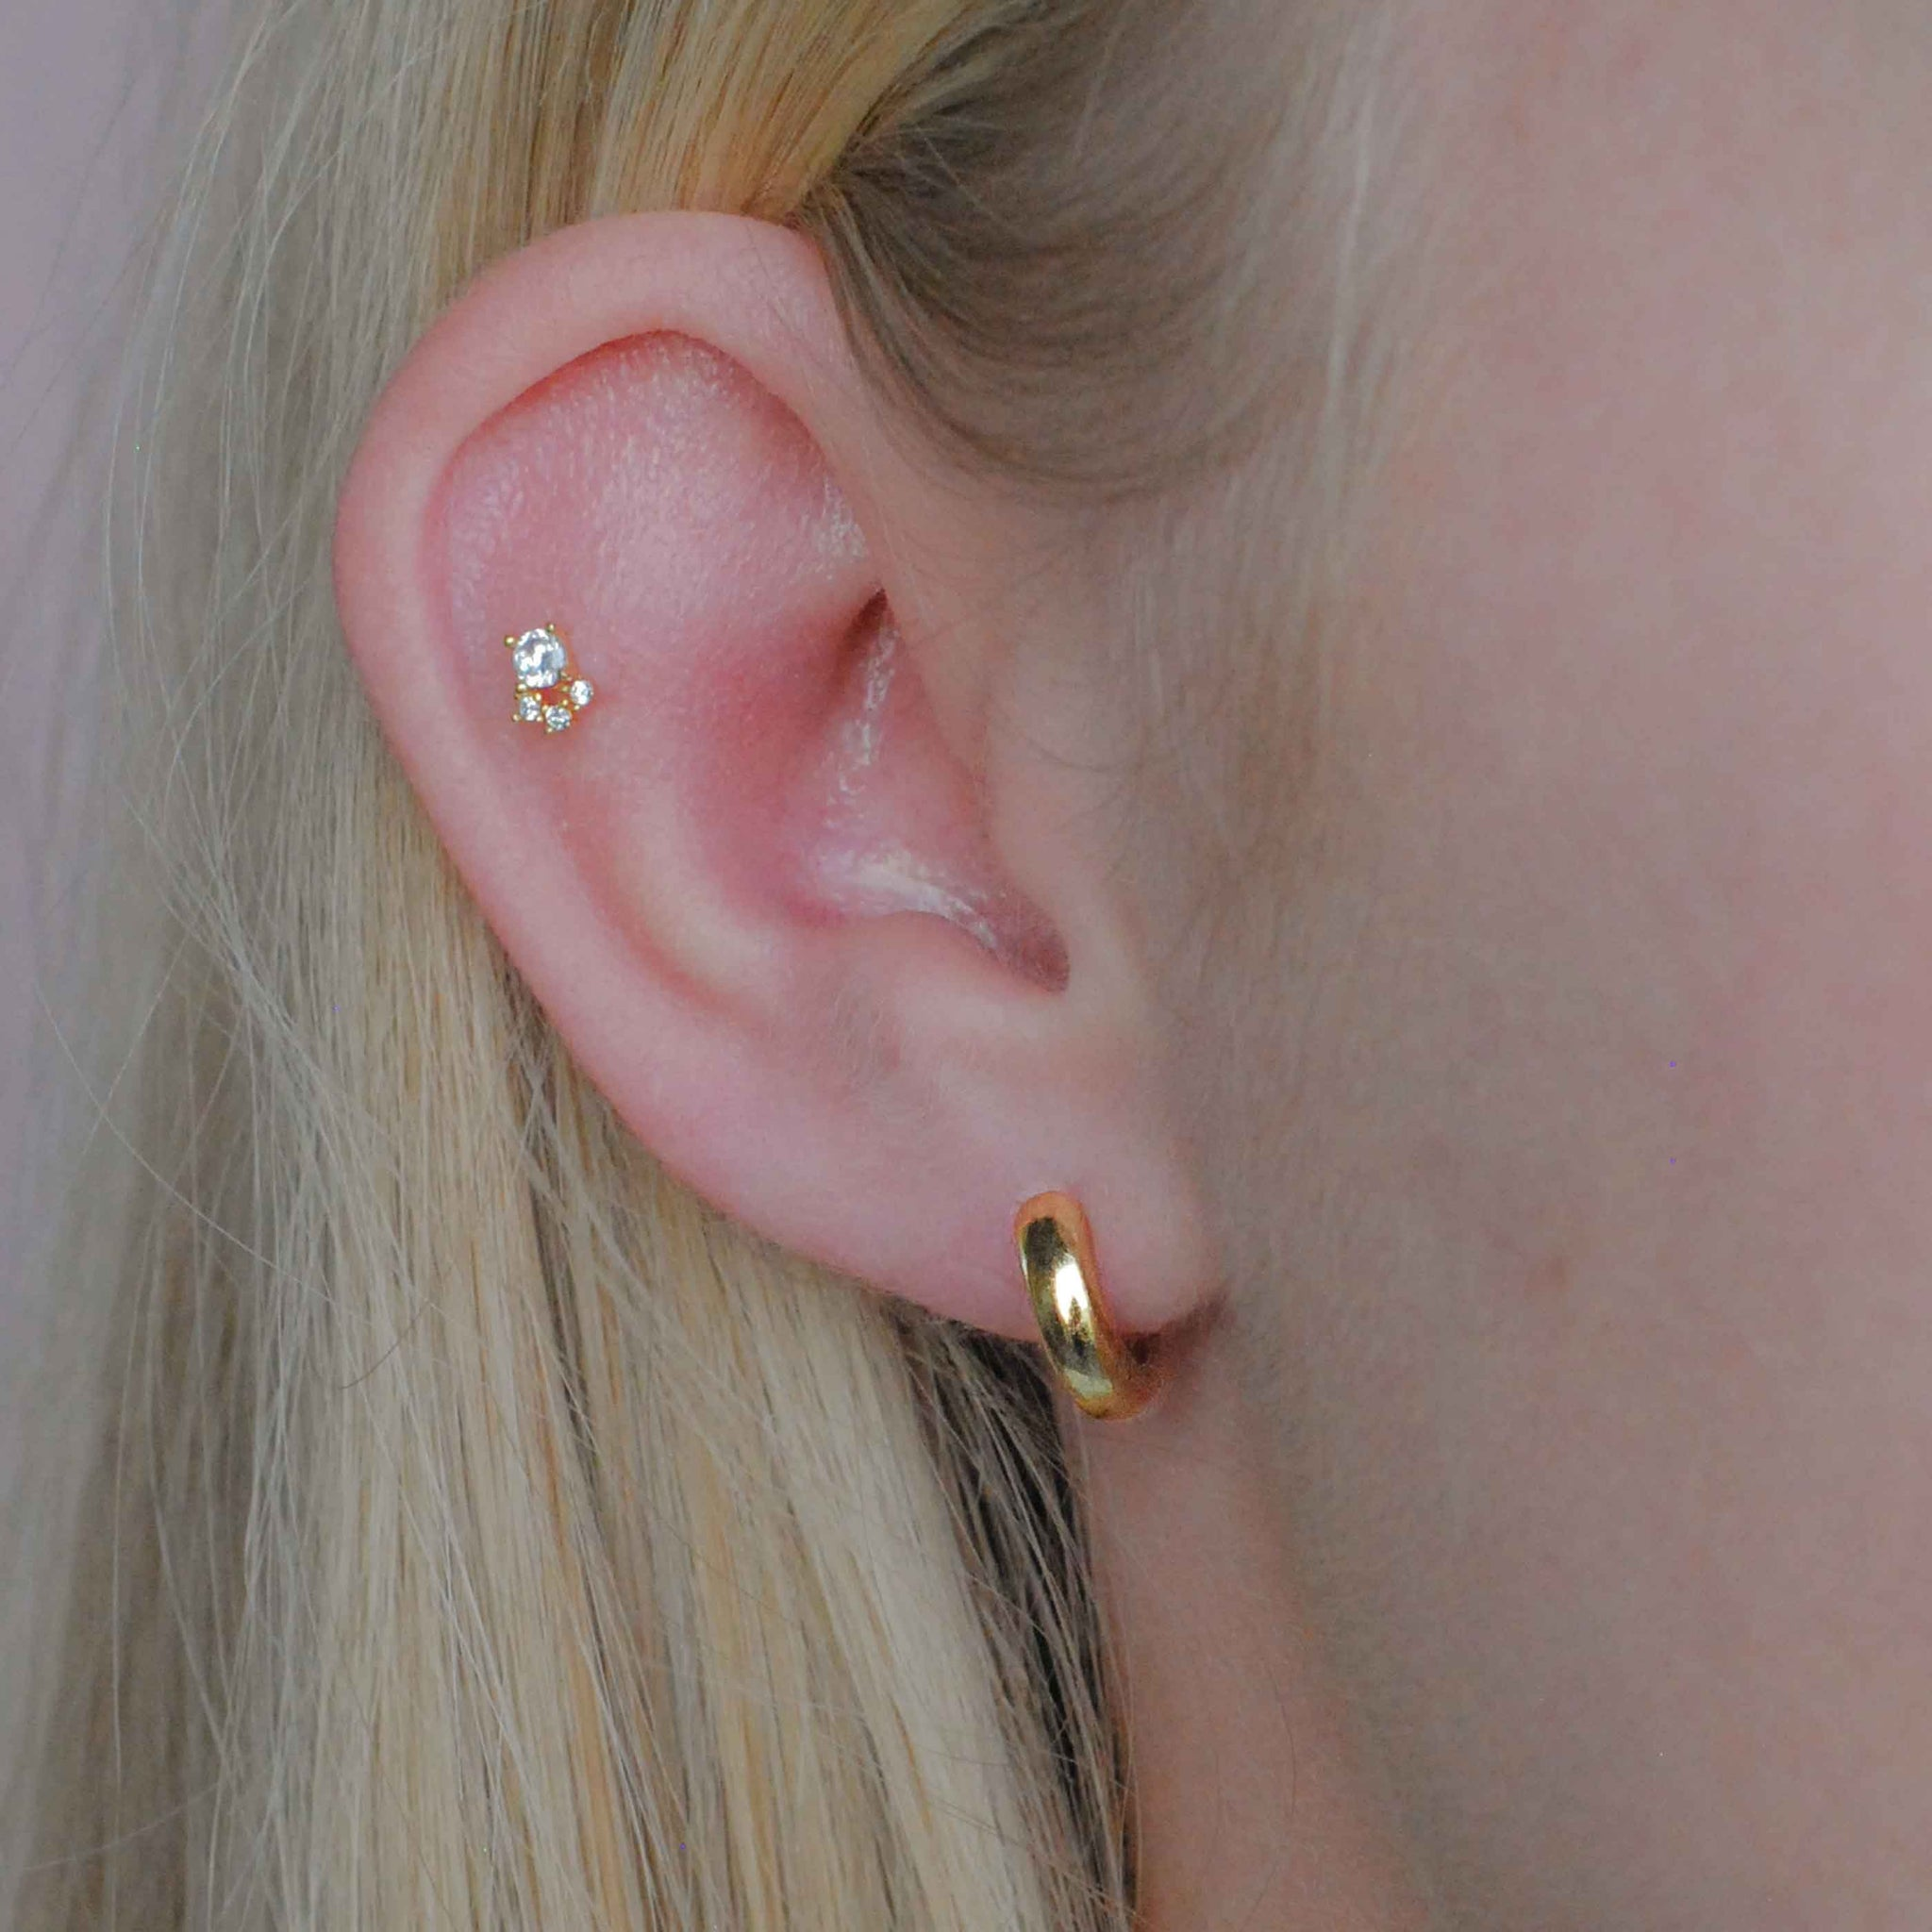 Crystal & Triple Stone Barbell in Gold worn in outer conch piercing